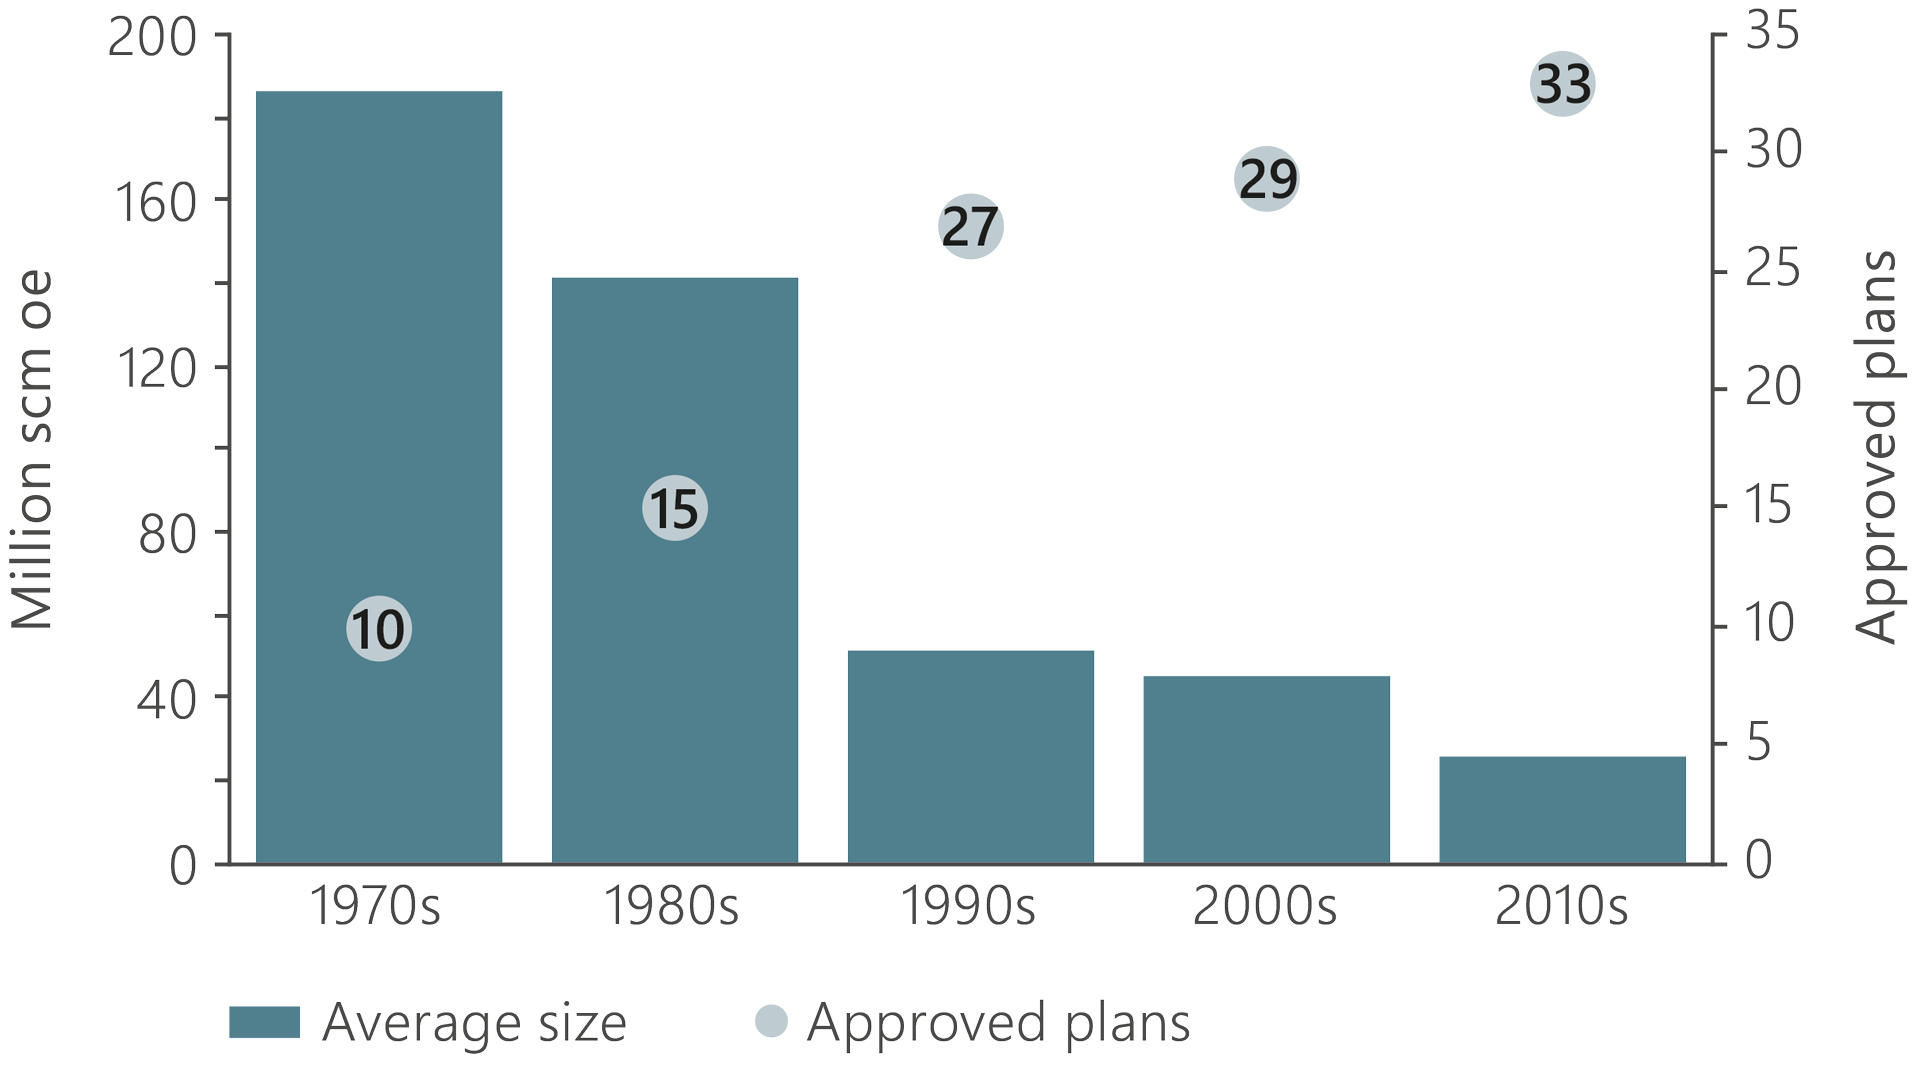 A bar graph illustrating the average size at first PDO and number of approved development plans